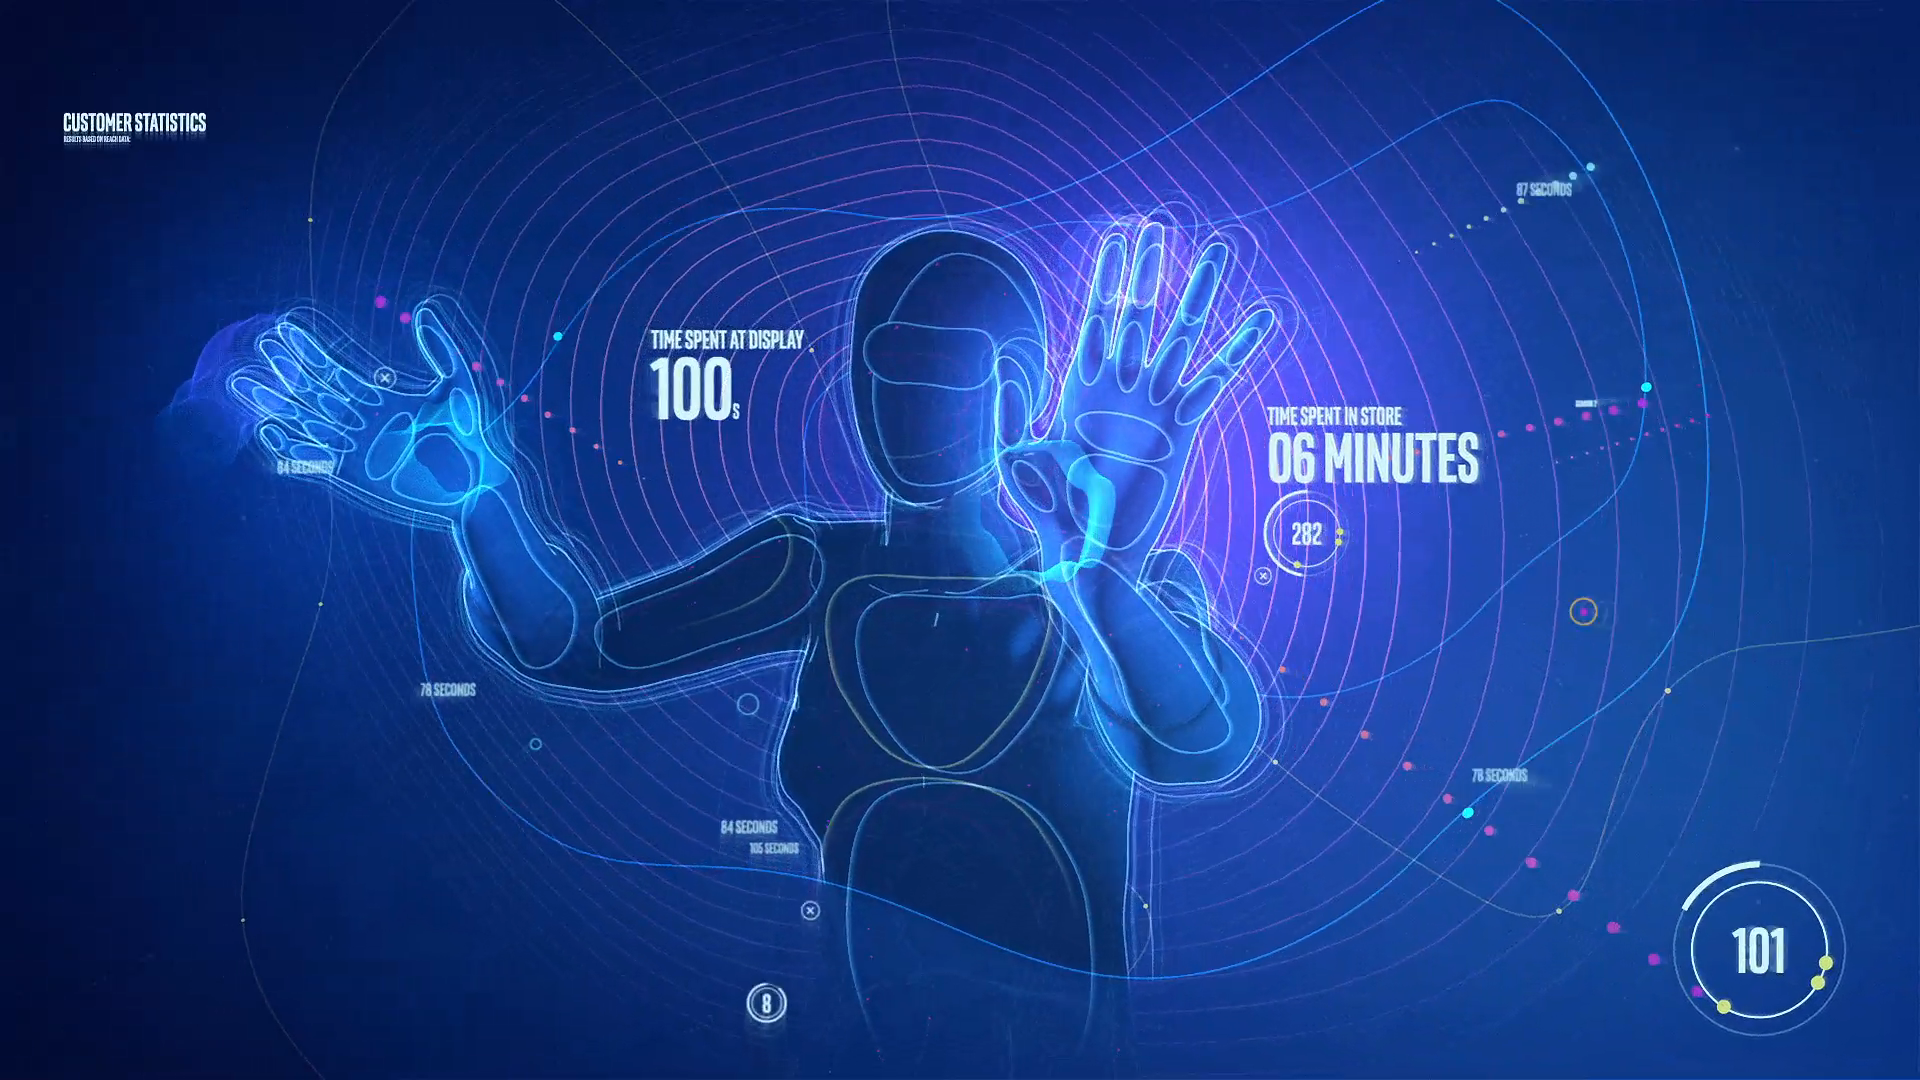 INTEL 'CONNECT' FILMS